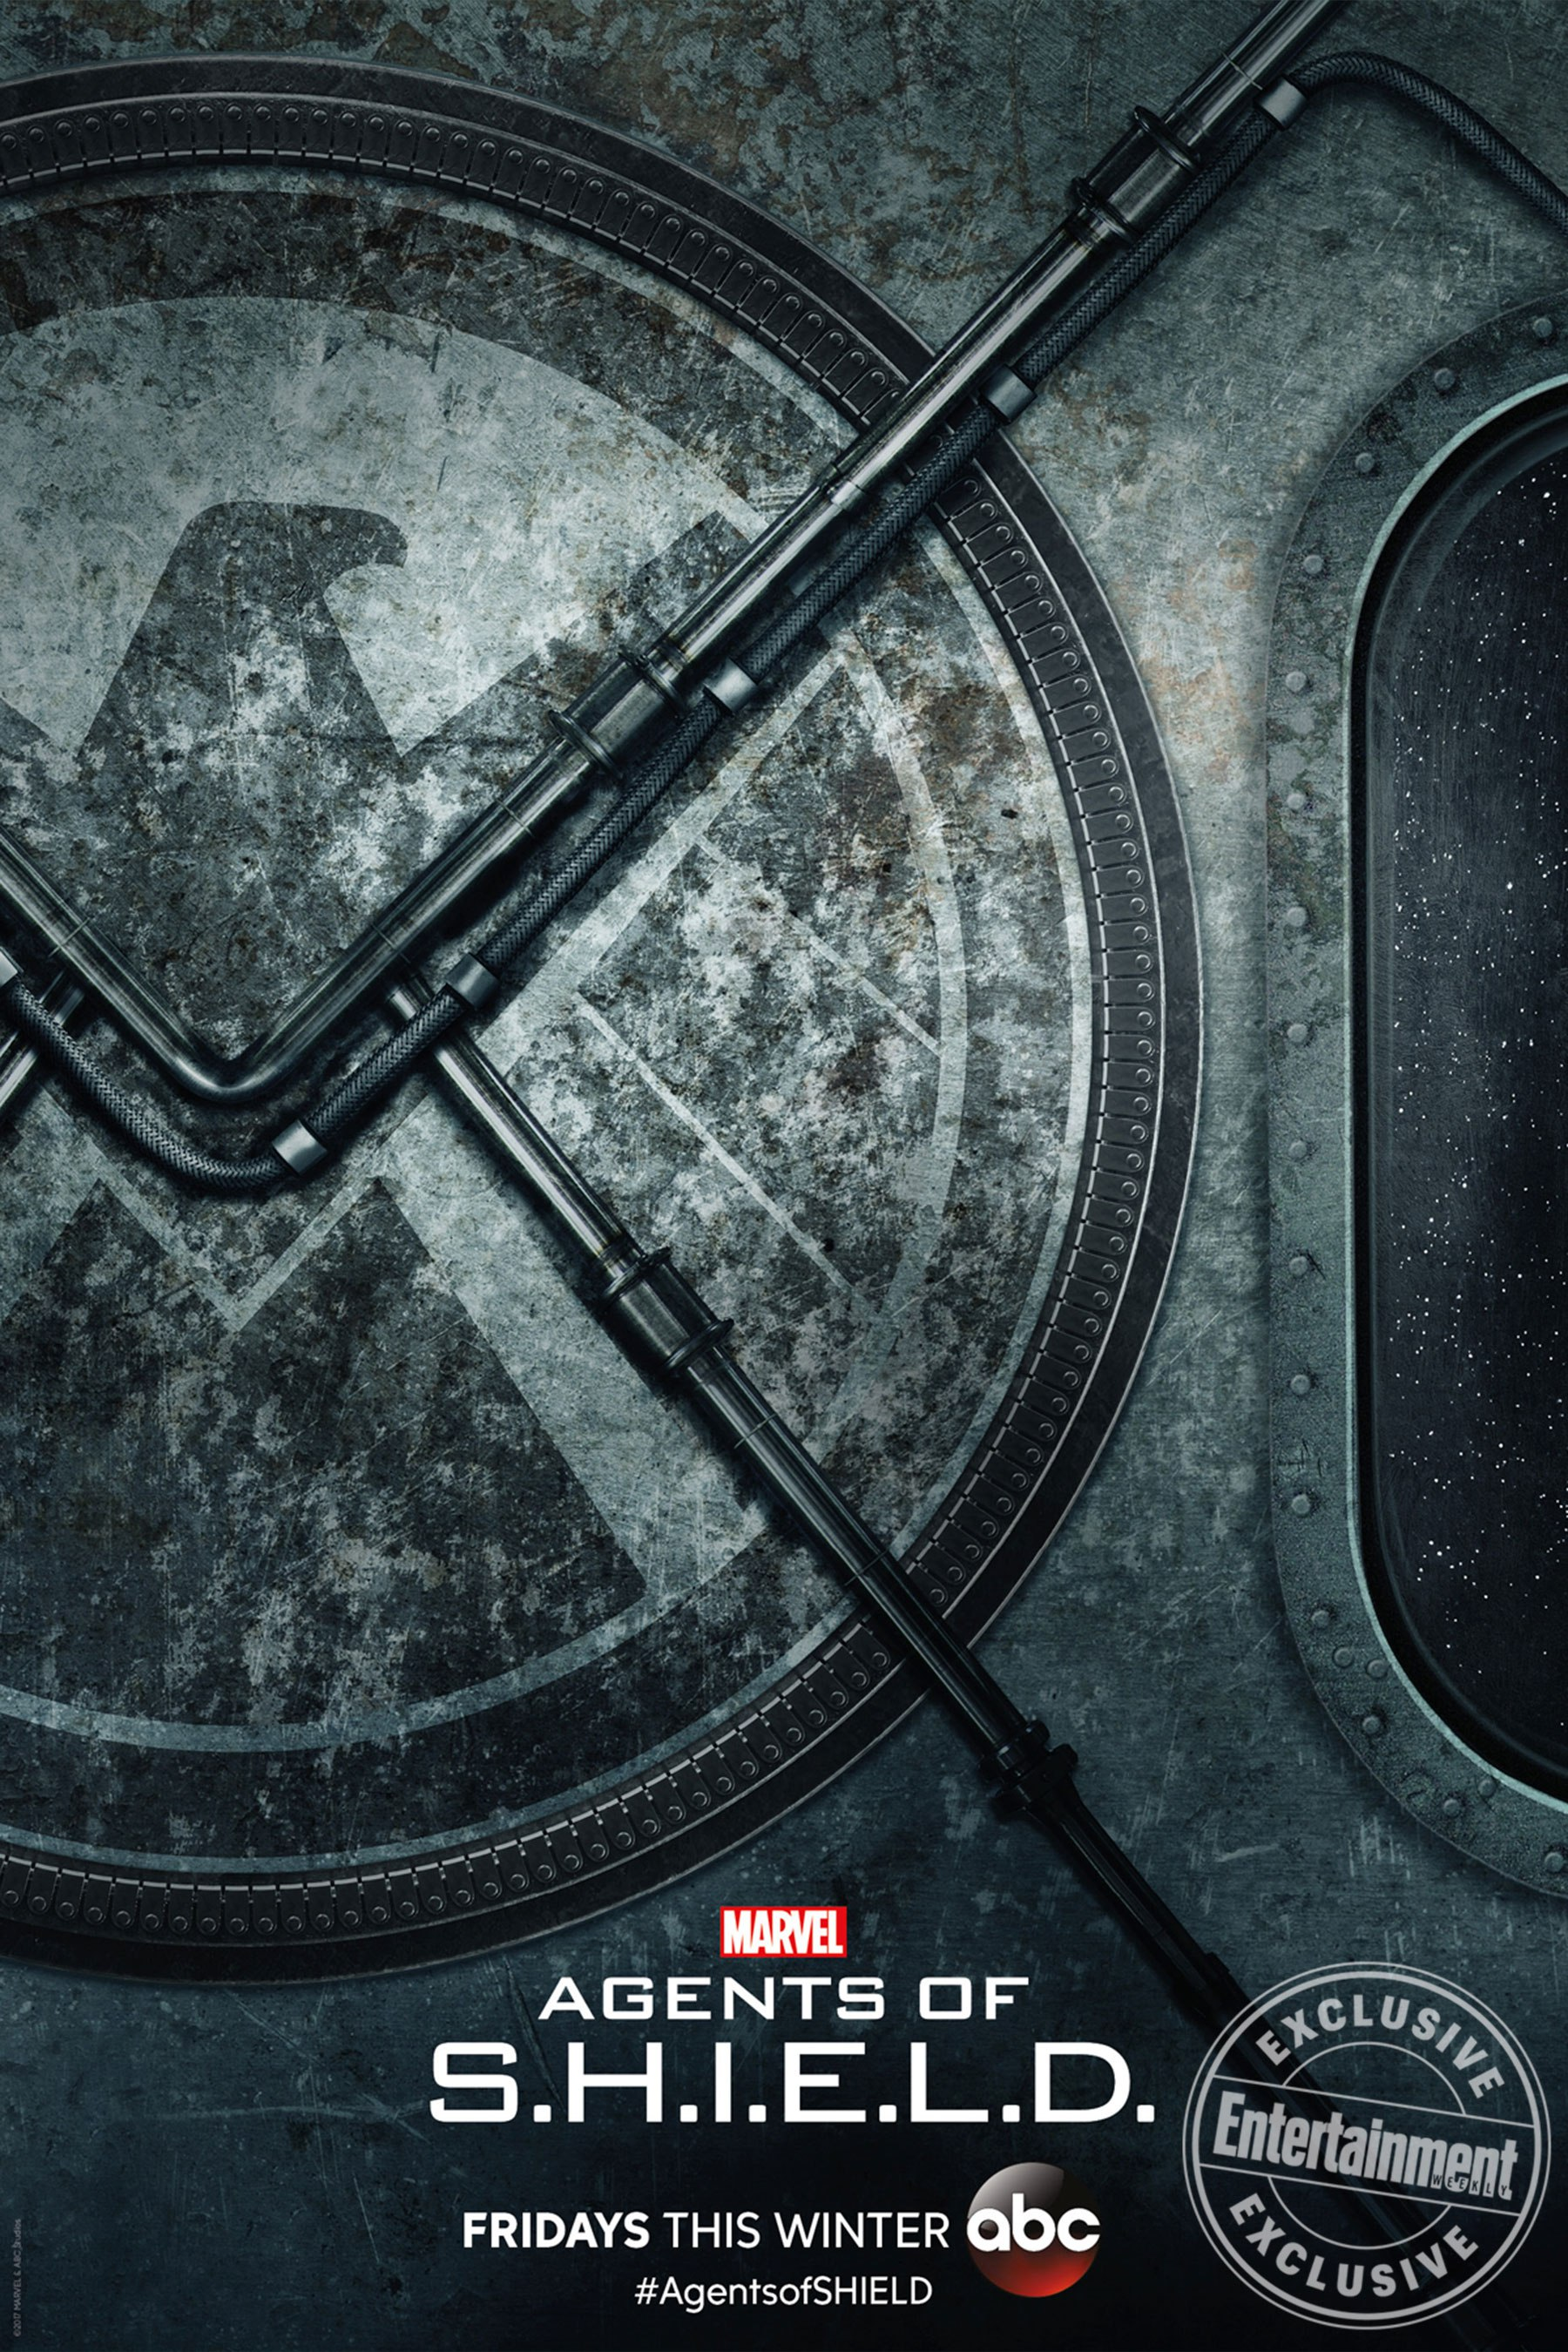 Marvel's Agents of SHIELD Season 5 Poster